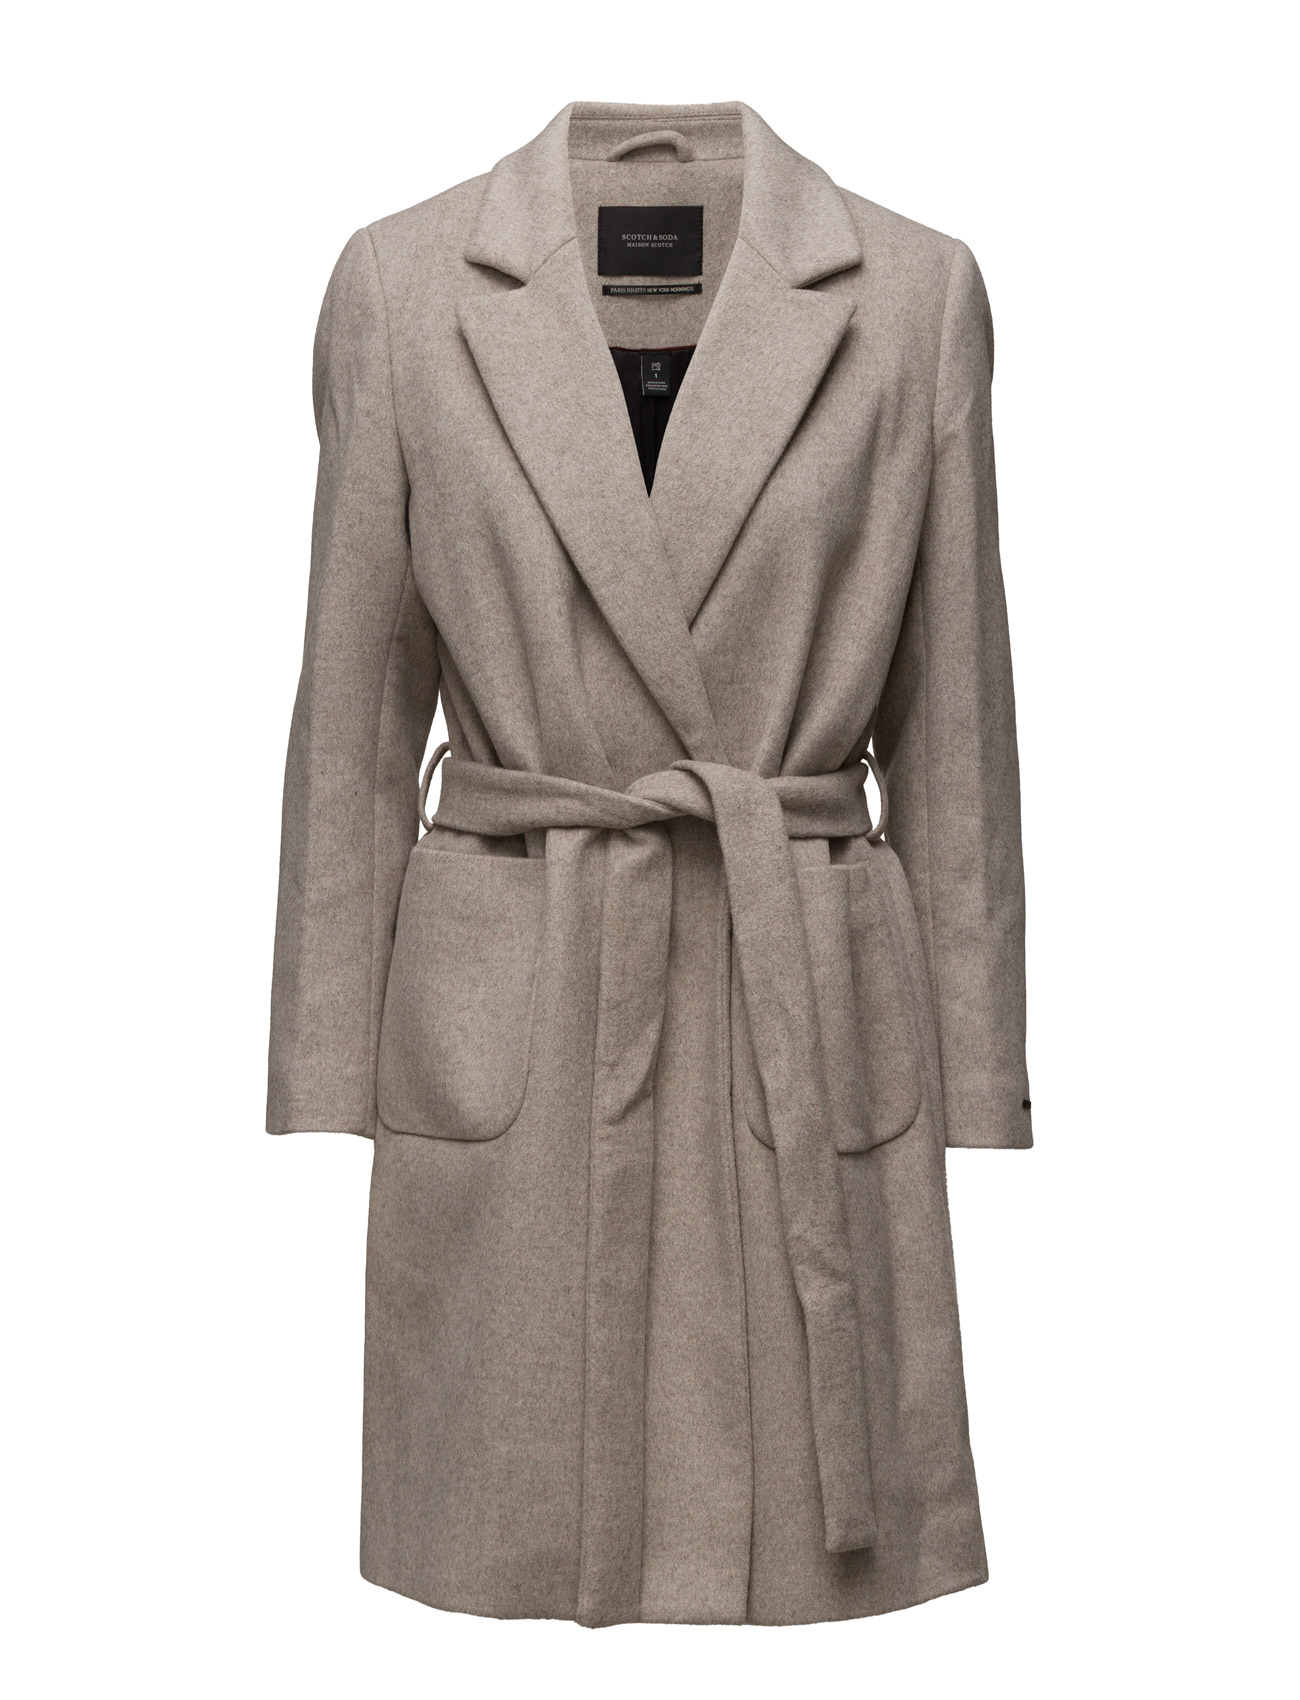 Wrap Over Coat In Soft Wool Blend Qualit Scotch & Soda Frakker til Damer i 7D Havregryn Melange